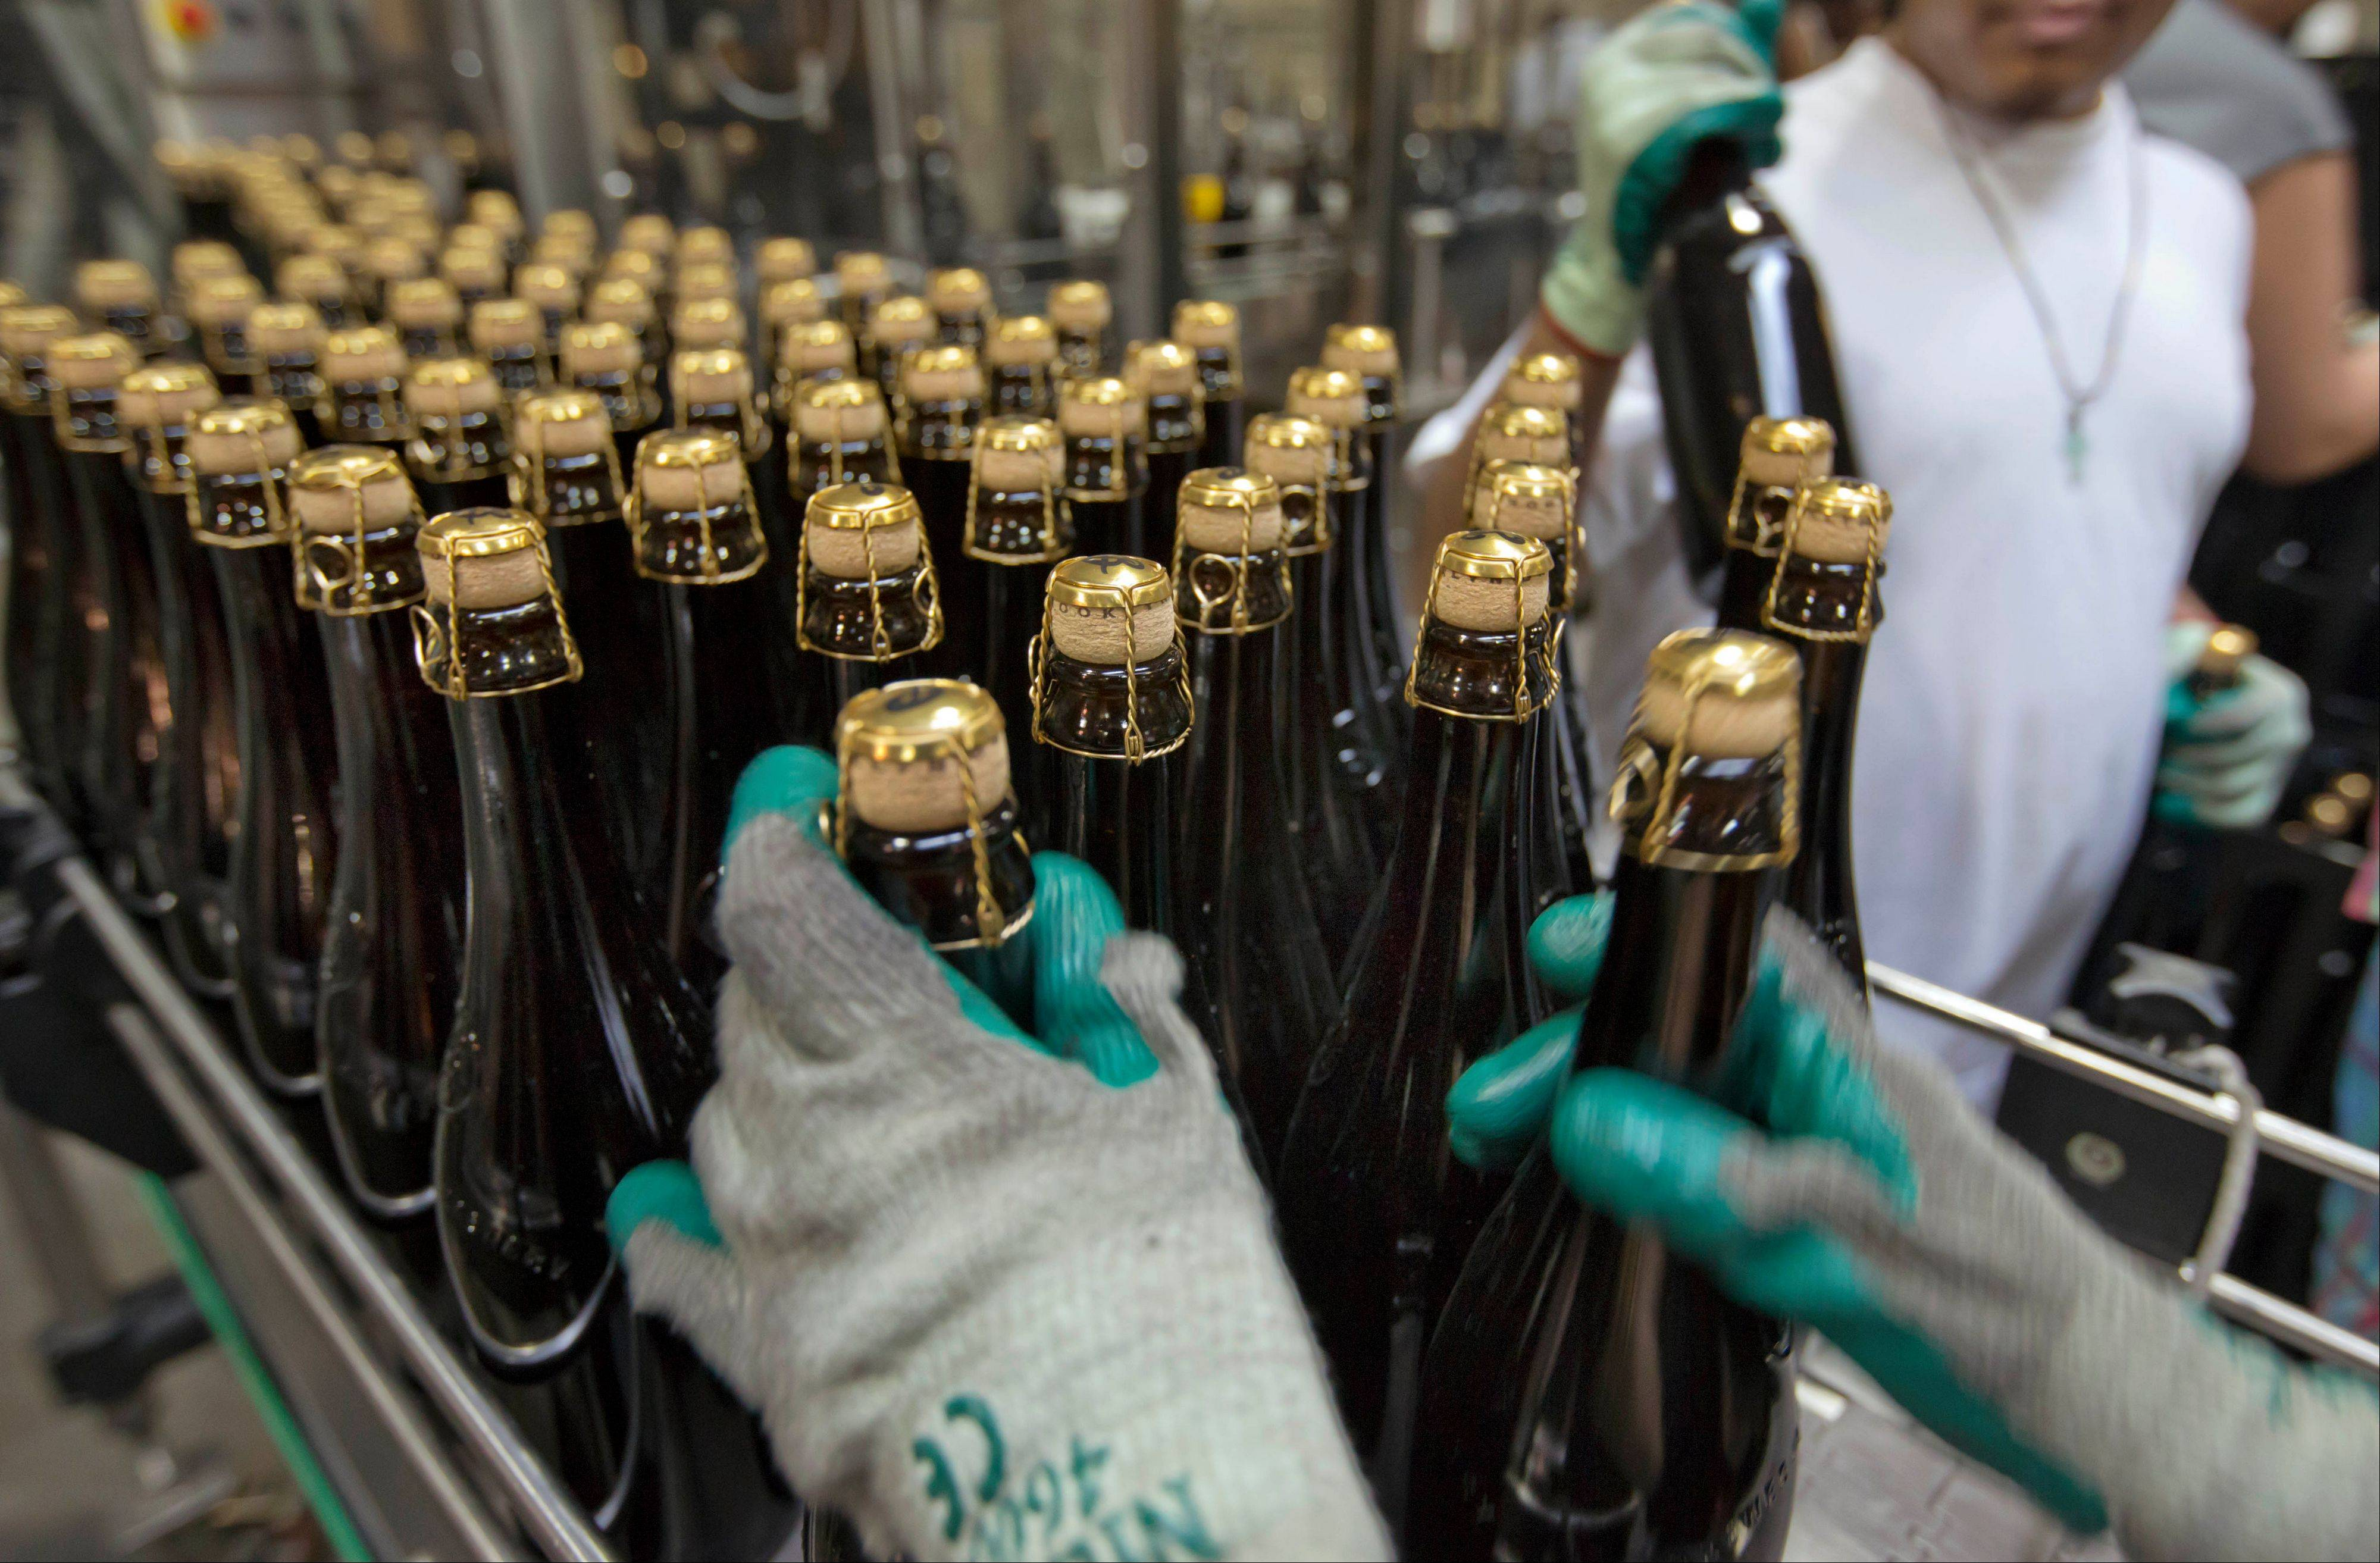 In this July 1, 2013 photo, bottles of Brooklyn Local 2, a Belgian-inspired Dark Abbey Ale, are loaded on to a conveyor for labeling, at the Brooklyn Brewery, in the Williamsburg section of the Brooklyn borough of New York. In rundown urban neighborhoods across the country, craft breweries helped transform the neighborhoods around them, drawing young new residents and other small businesses.